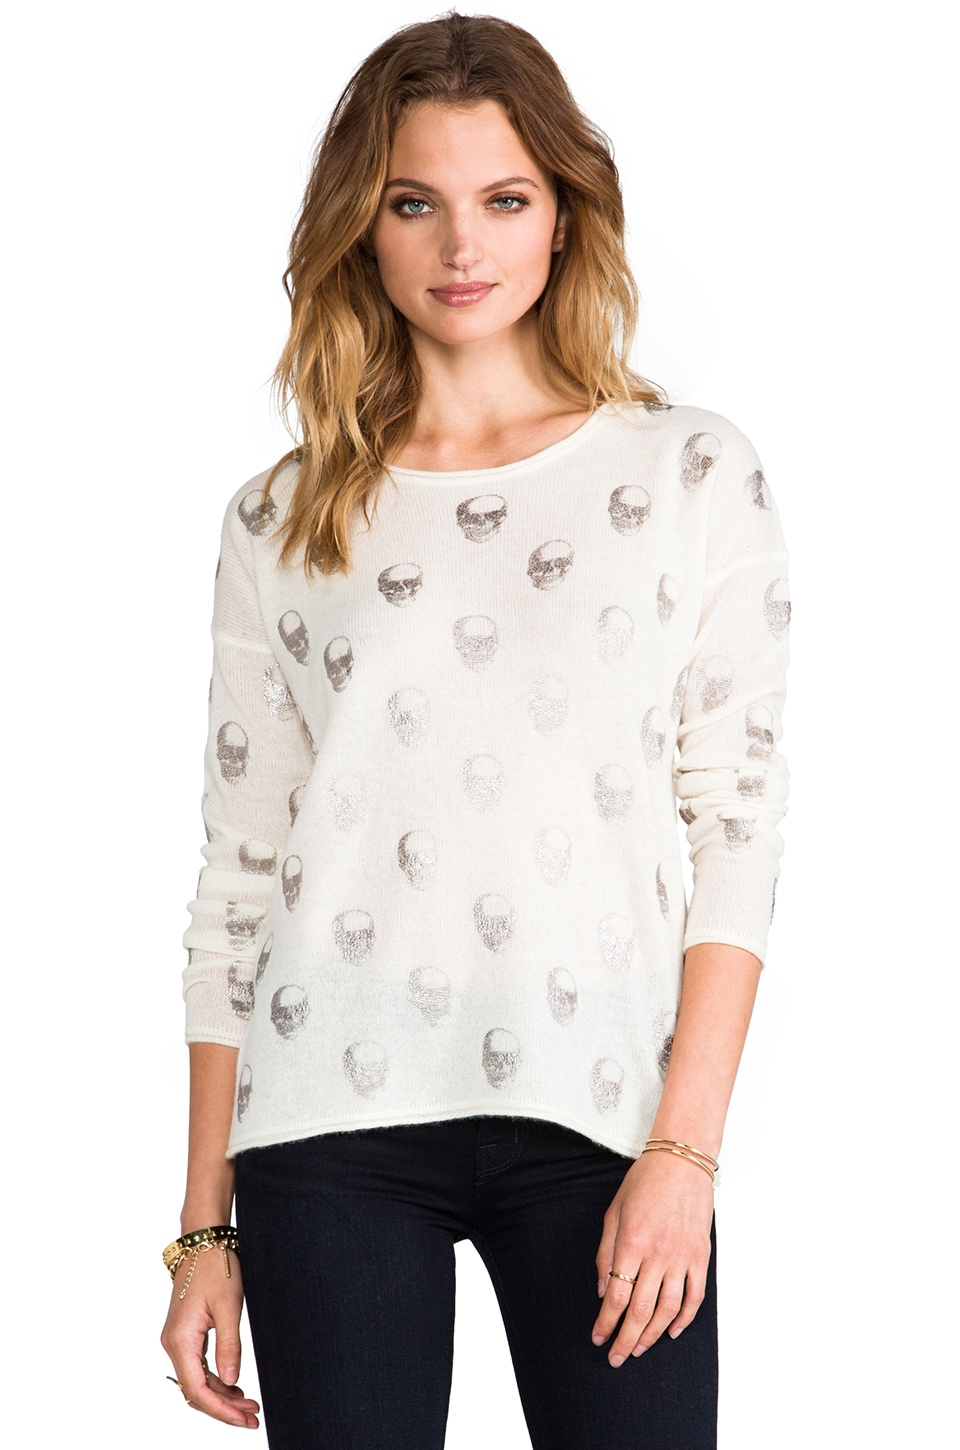 360CASHMERE Skull Cashmere Jack Foil Crew Neck Sweater in Ivory & Silver